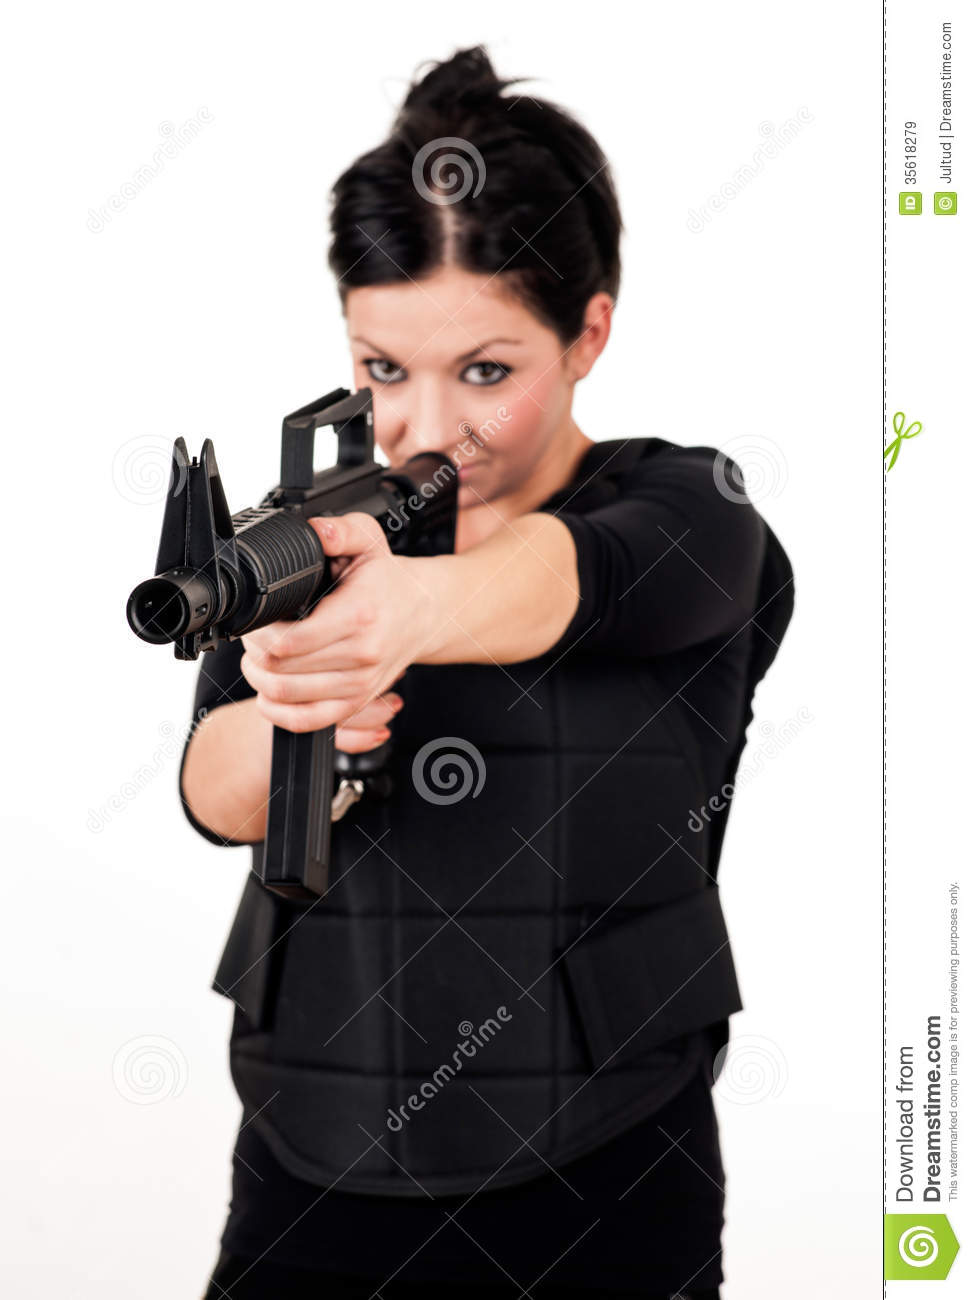 Woman Gun Stock Images, Royalty-Free Images & Vectors.